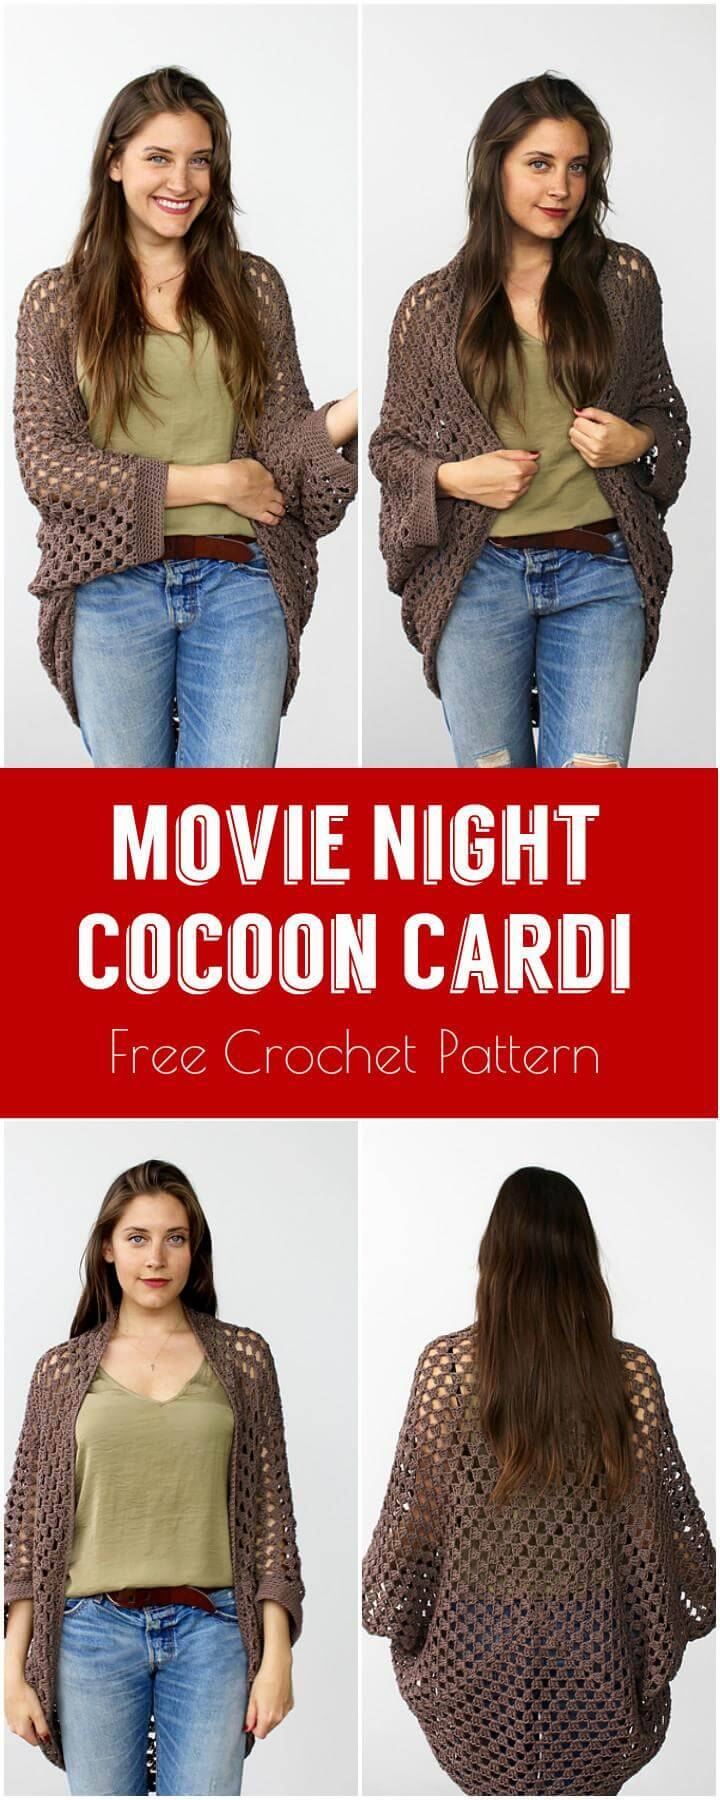 Movie Night Cocoon CMovie Night Cocoon Cardi Free Crochet Patternardi Free Crochet Pattern